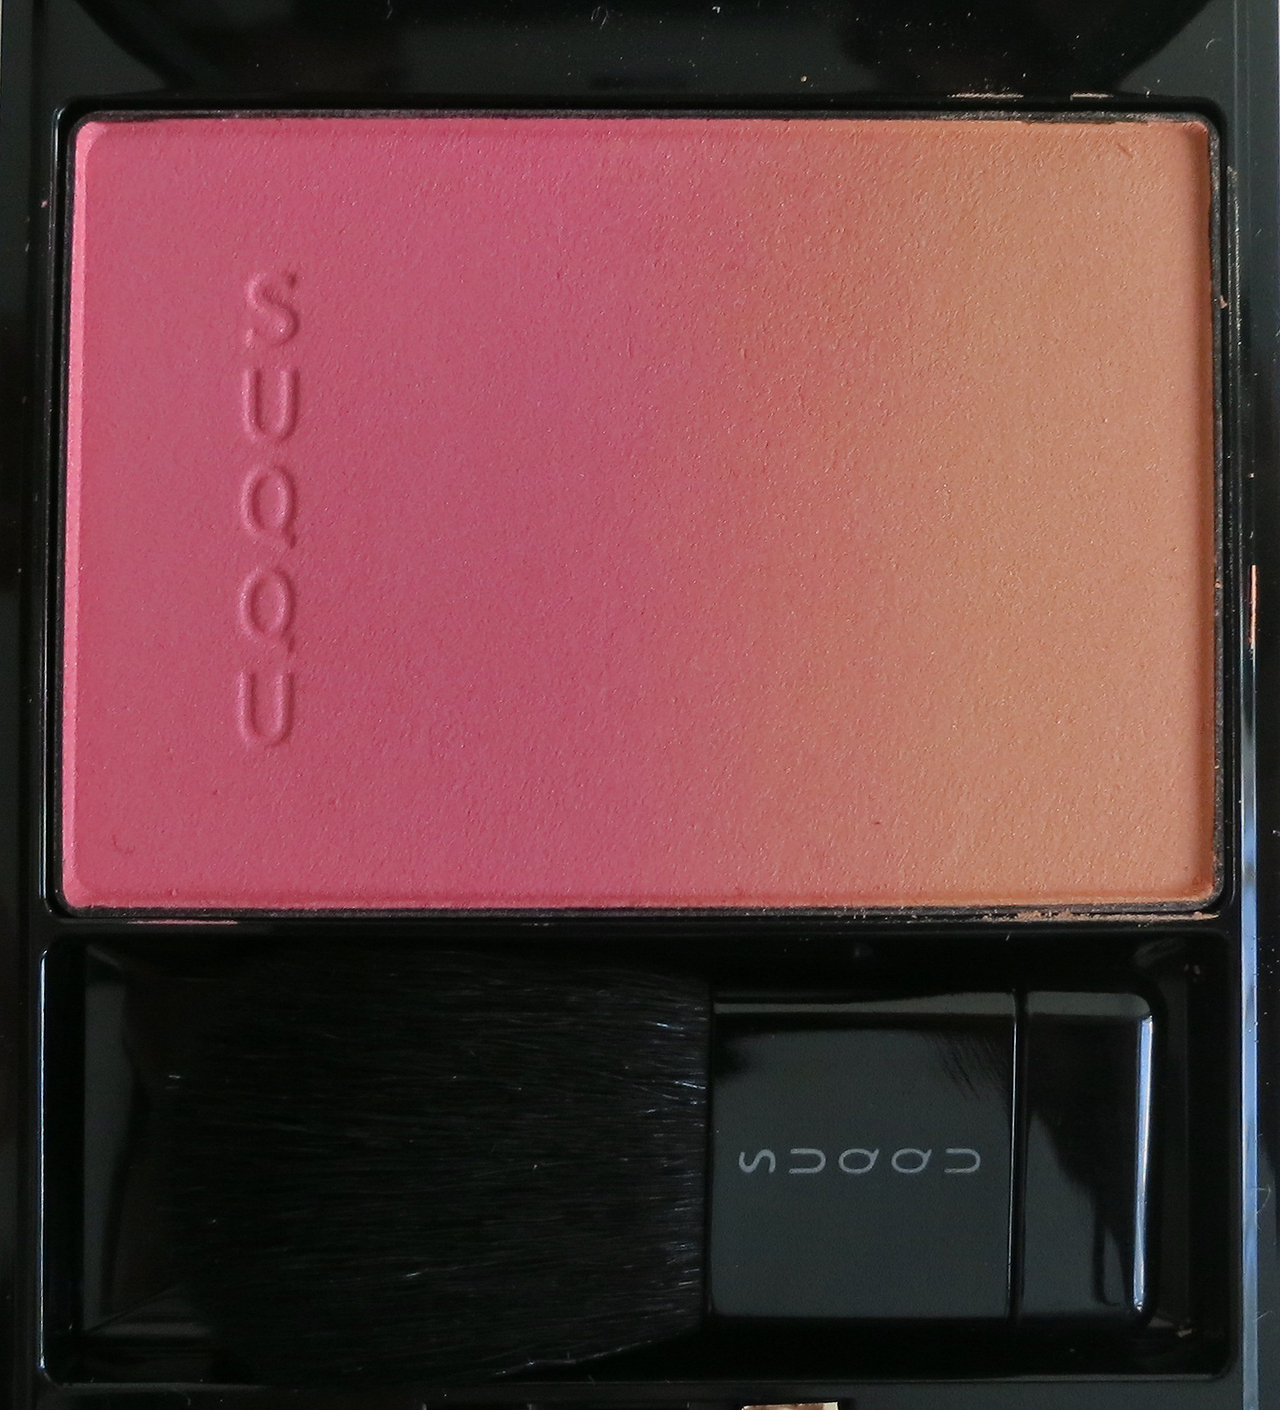 SUQQU Pure Color Blush 01 Tsubomizaki